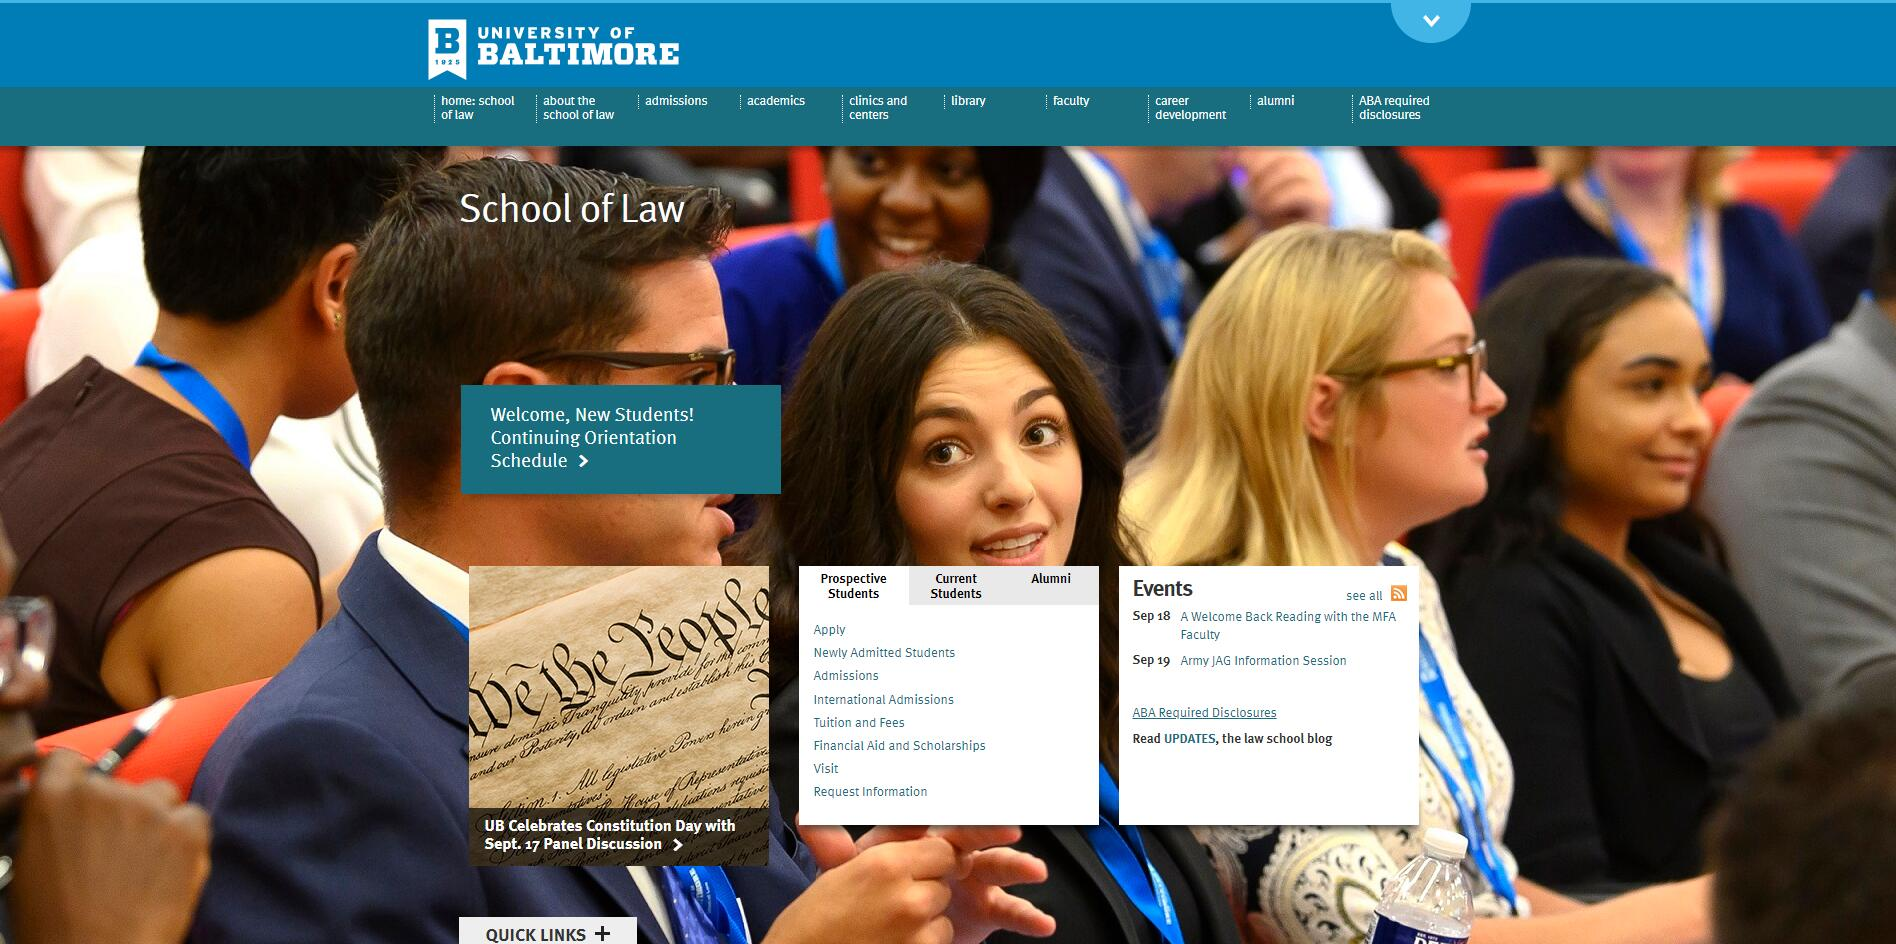 The School of Law at University of Baltimore